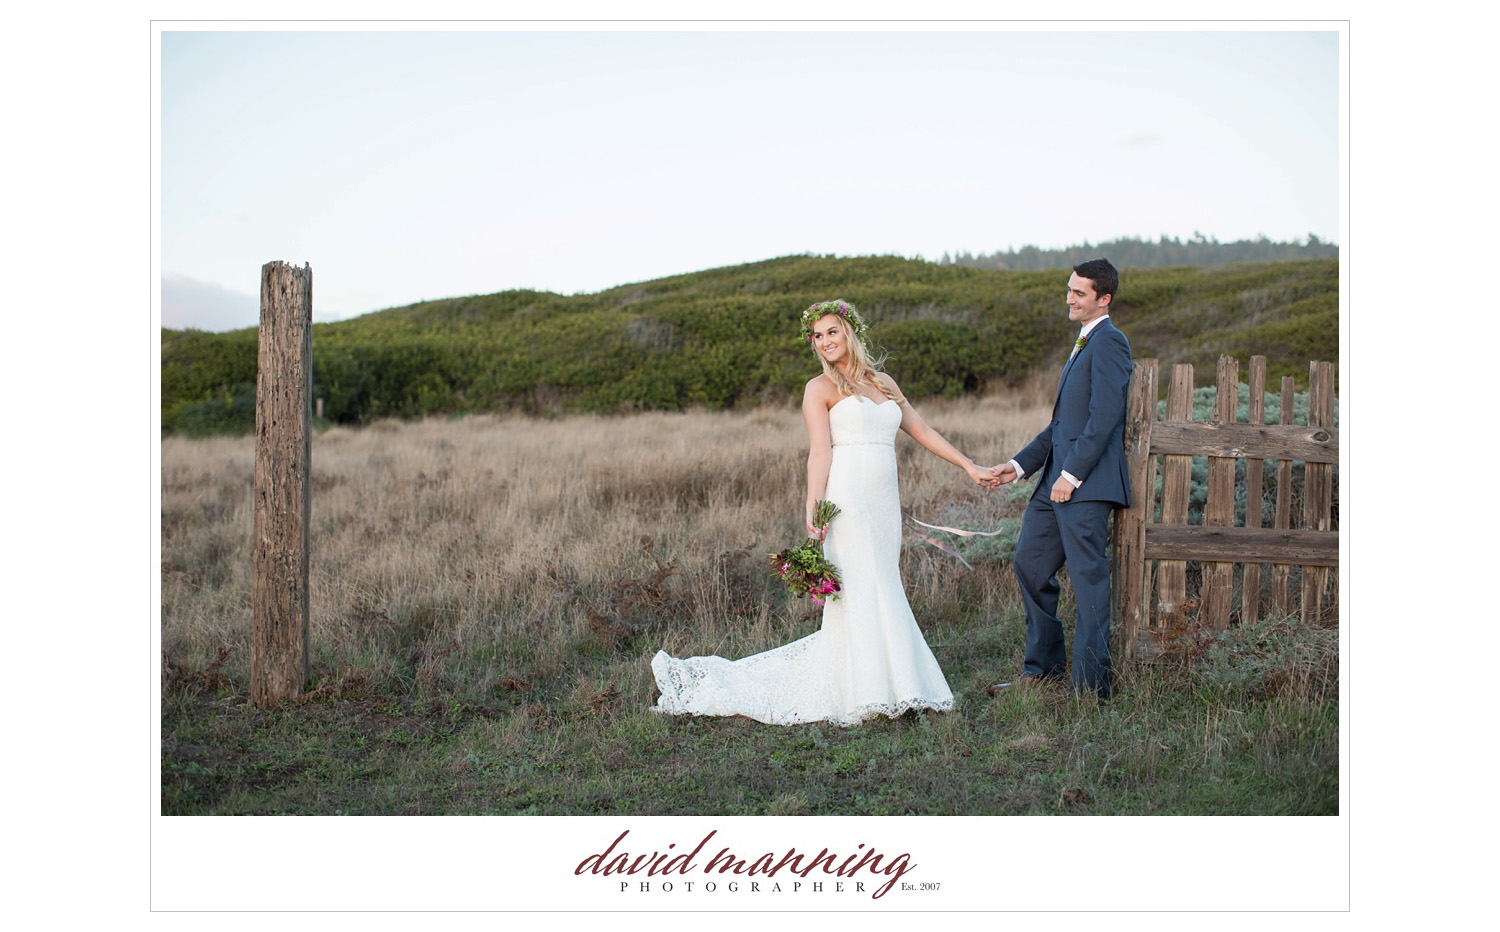 Sea-Ranch-Sonoma-Destination-Wedding-David-Manning-Photographers-141101-0042.jpg